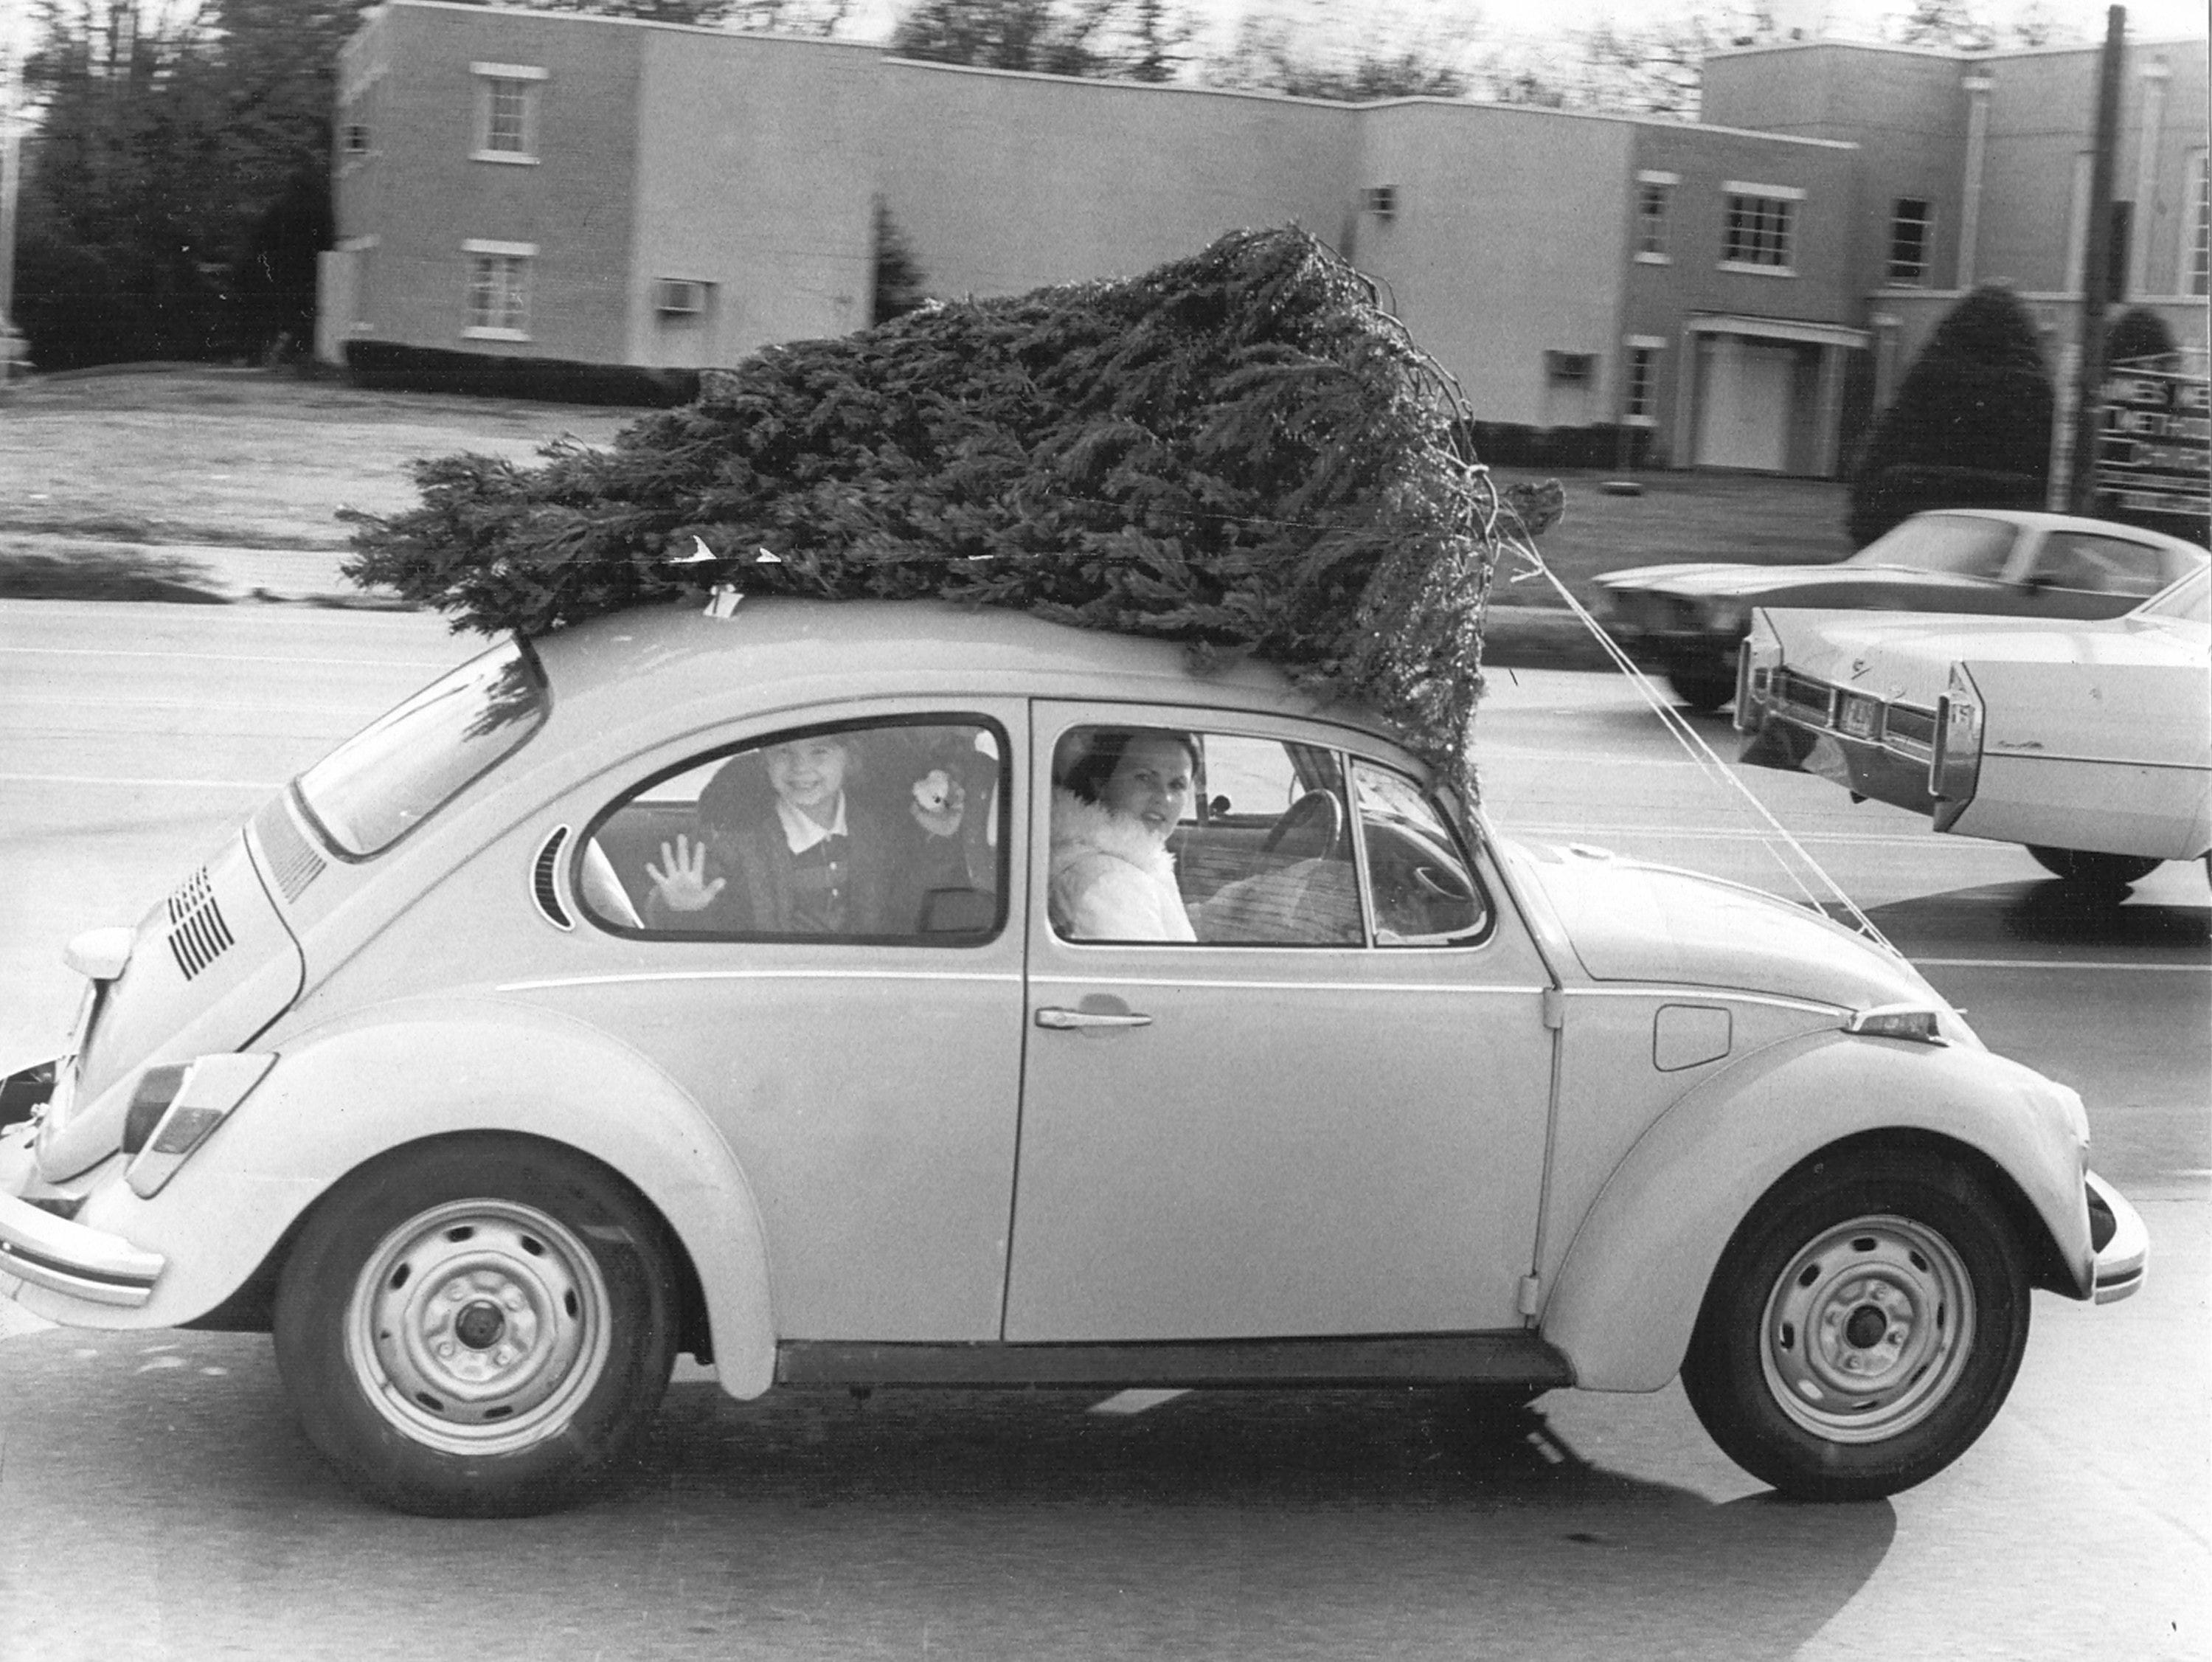 Mr. and Mrs. Jerry White of 4366 Yale Road roll west on Summer Avenue near Stratford on their way home with a back seat full of kids and a roof full of Christmas tree on 12 Dec 1977.